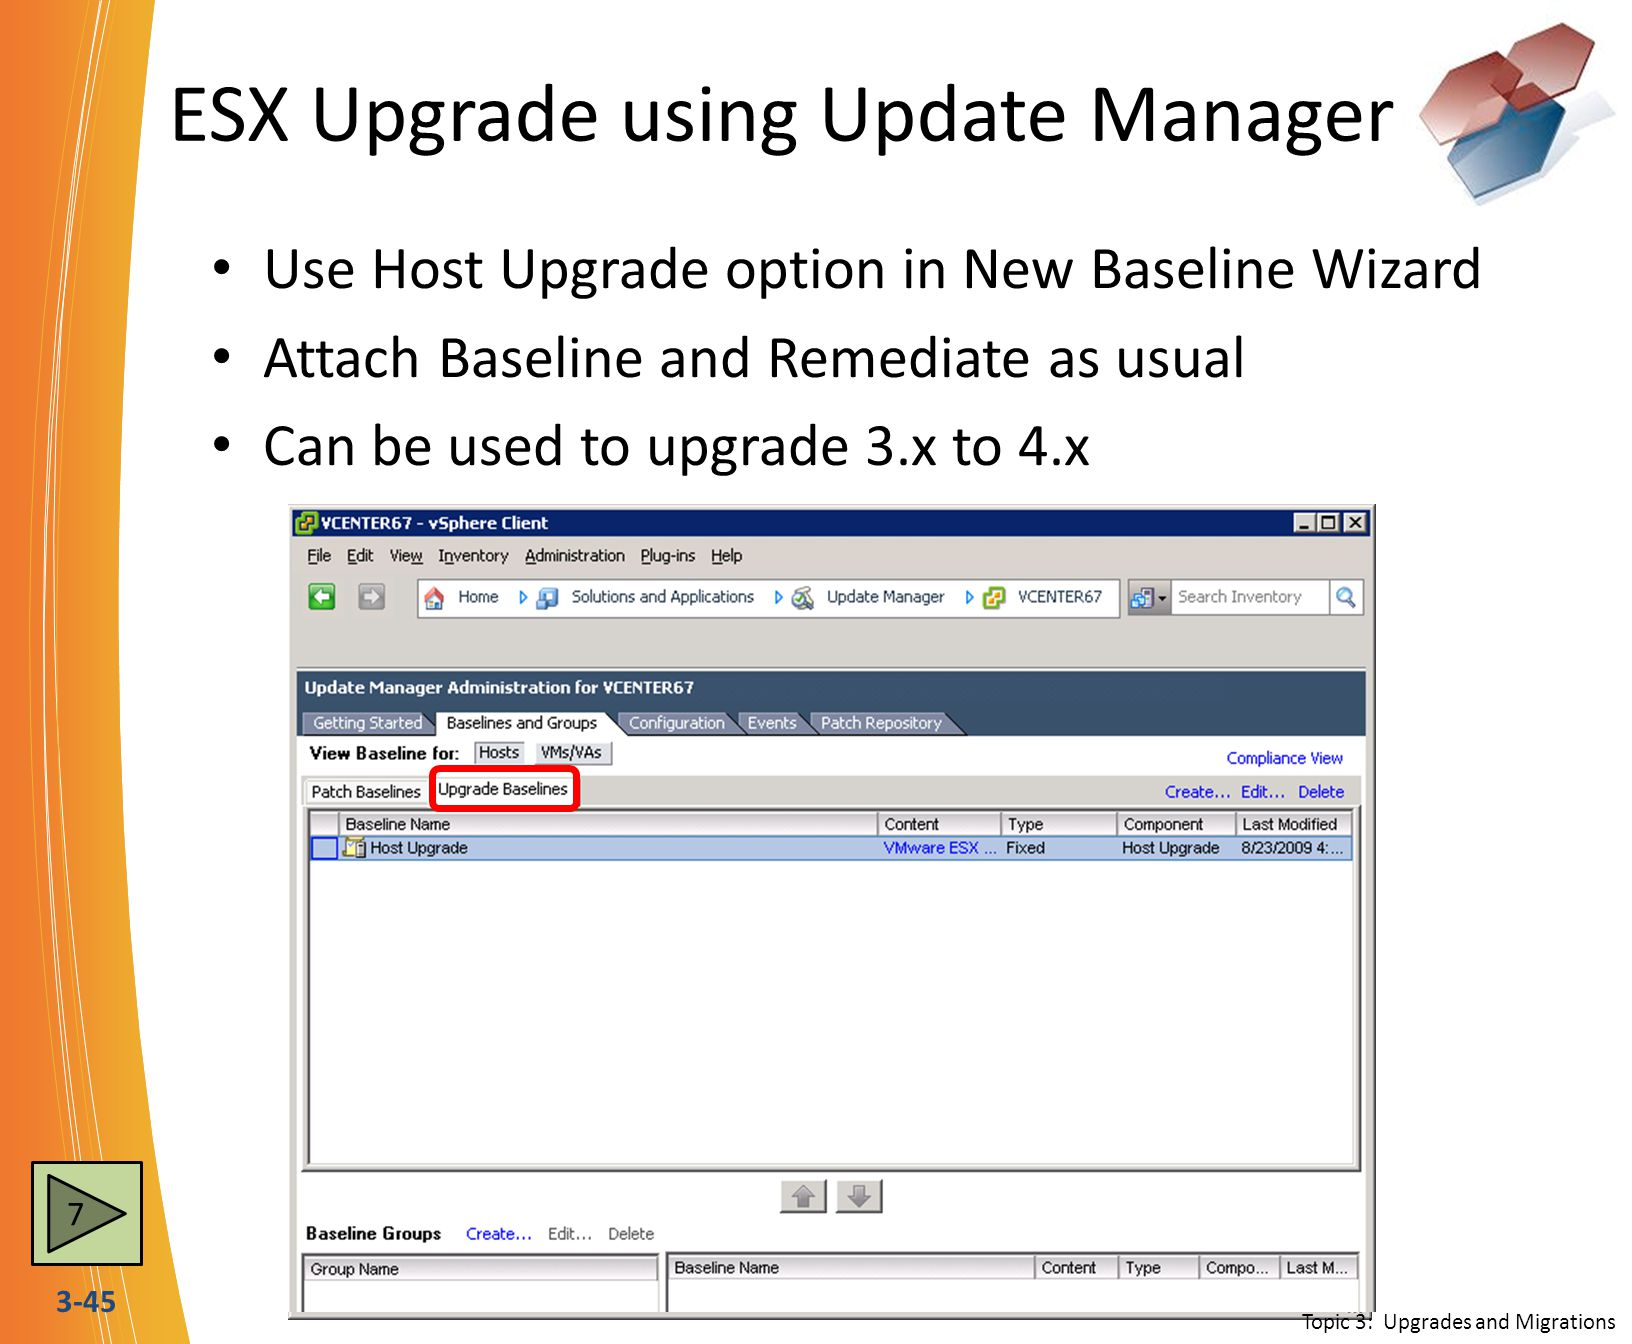 3-45 ESX Upgrade using Update Manager Use Host Upgrade option in New Baseline Wizard Attach Baseline and Remediate as usual Can be used to upgrade 3.x to 4.x ISO only needs to be uploaded one time per version Topic 3: Upgrades and Migrations 7